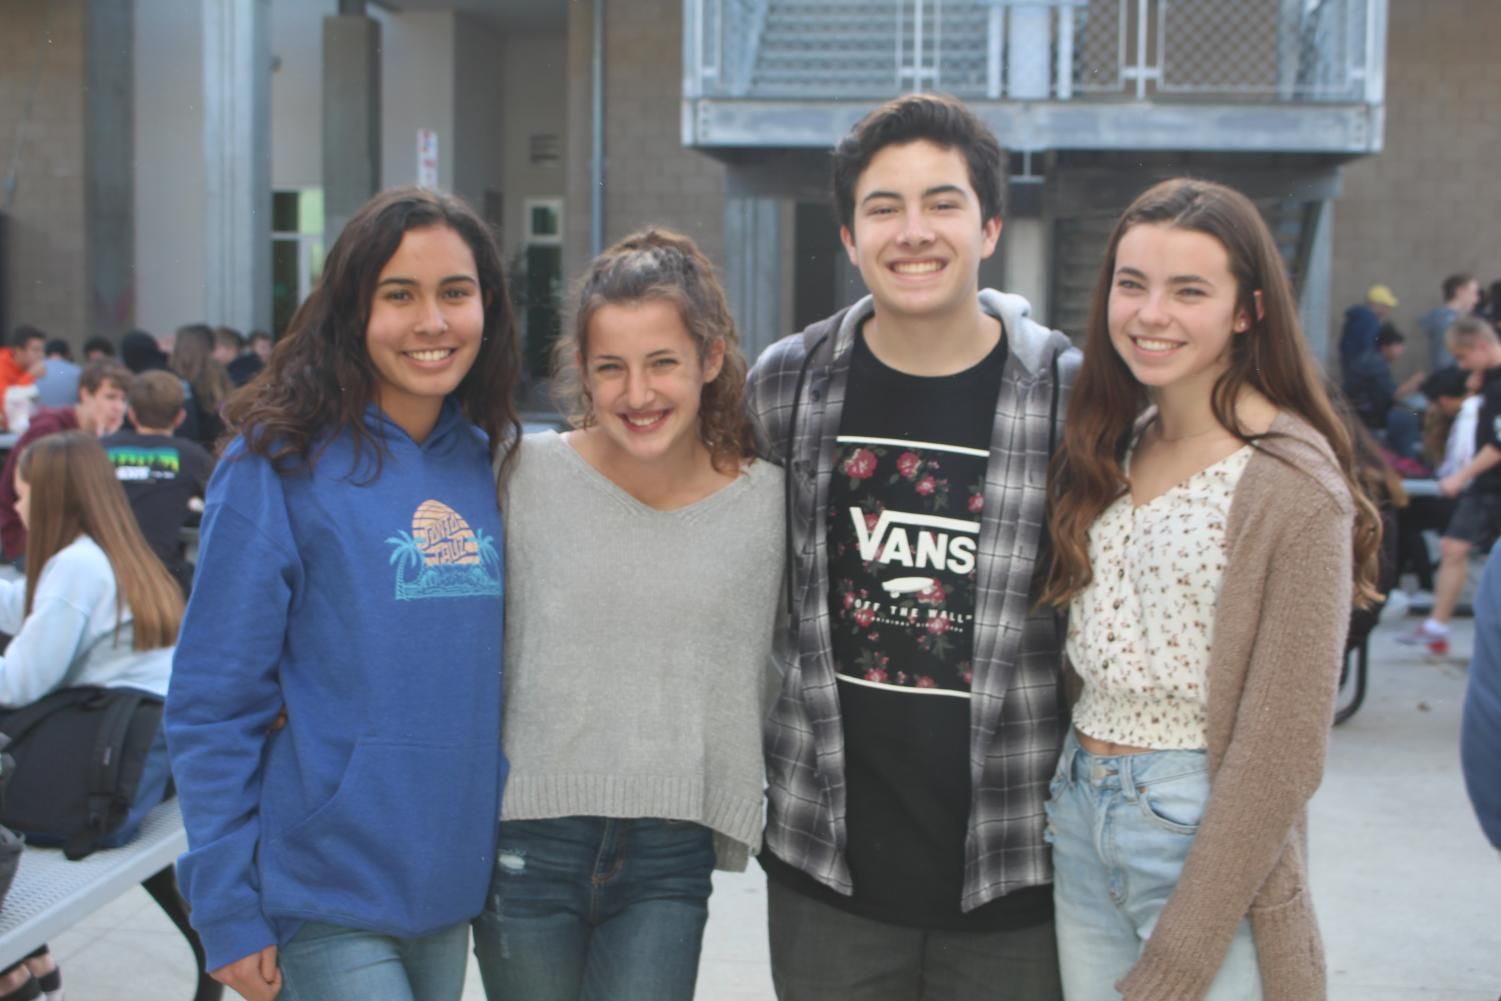 Sophomores Paola Gonzalez, Maya Grudman, Nolan Mejia, and Madison Blankenhorn are pictured smiling. Each one plays an important role to help represent their sophomore class.